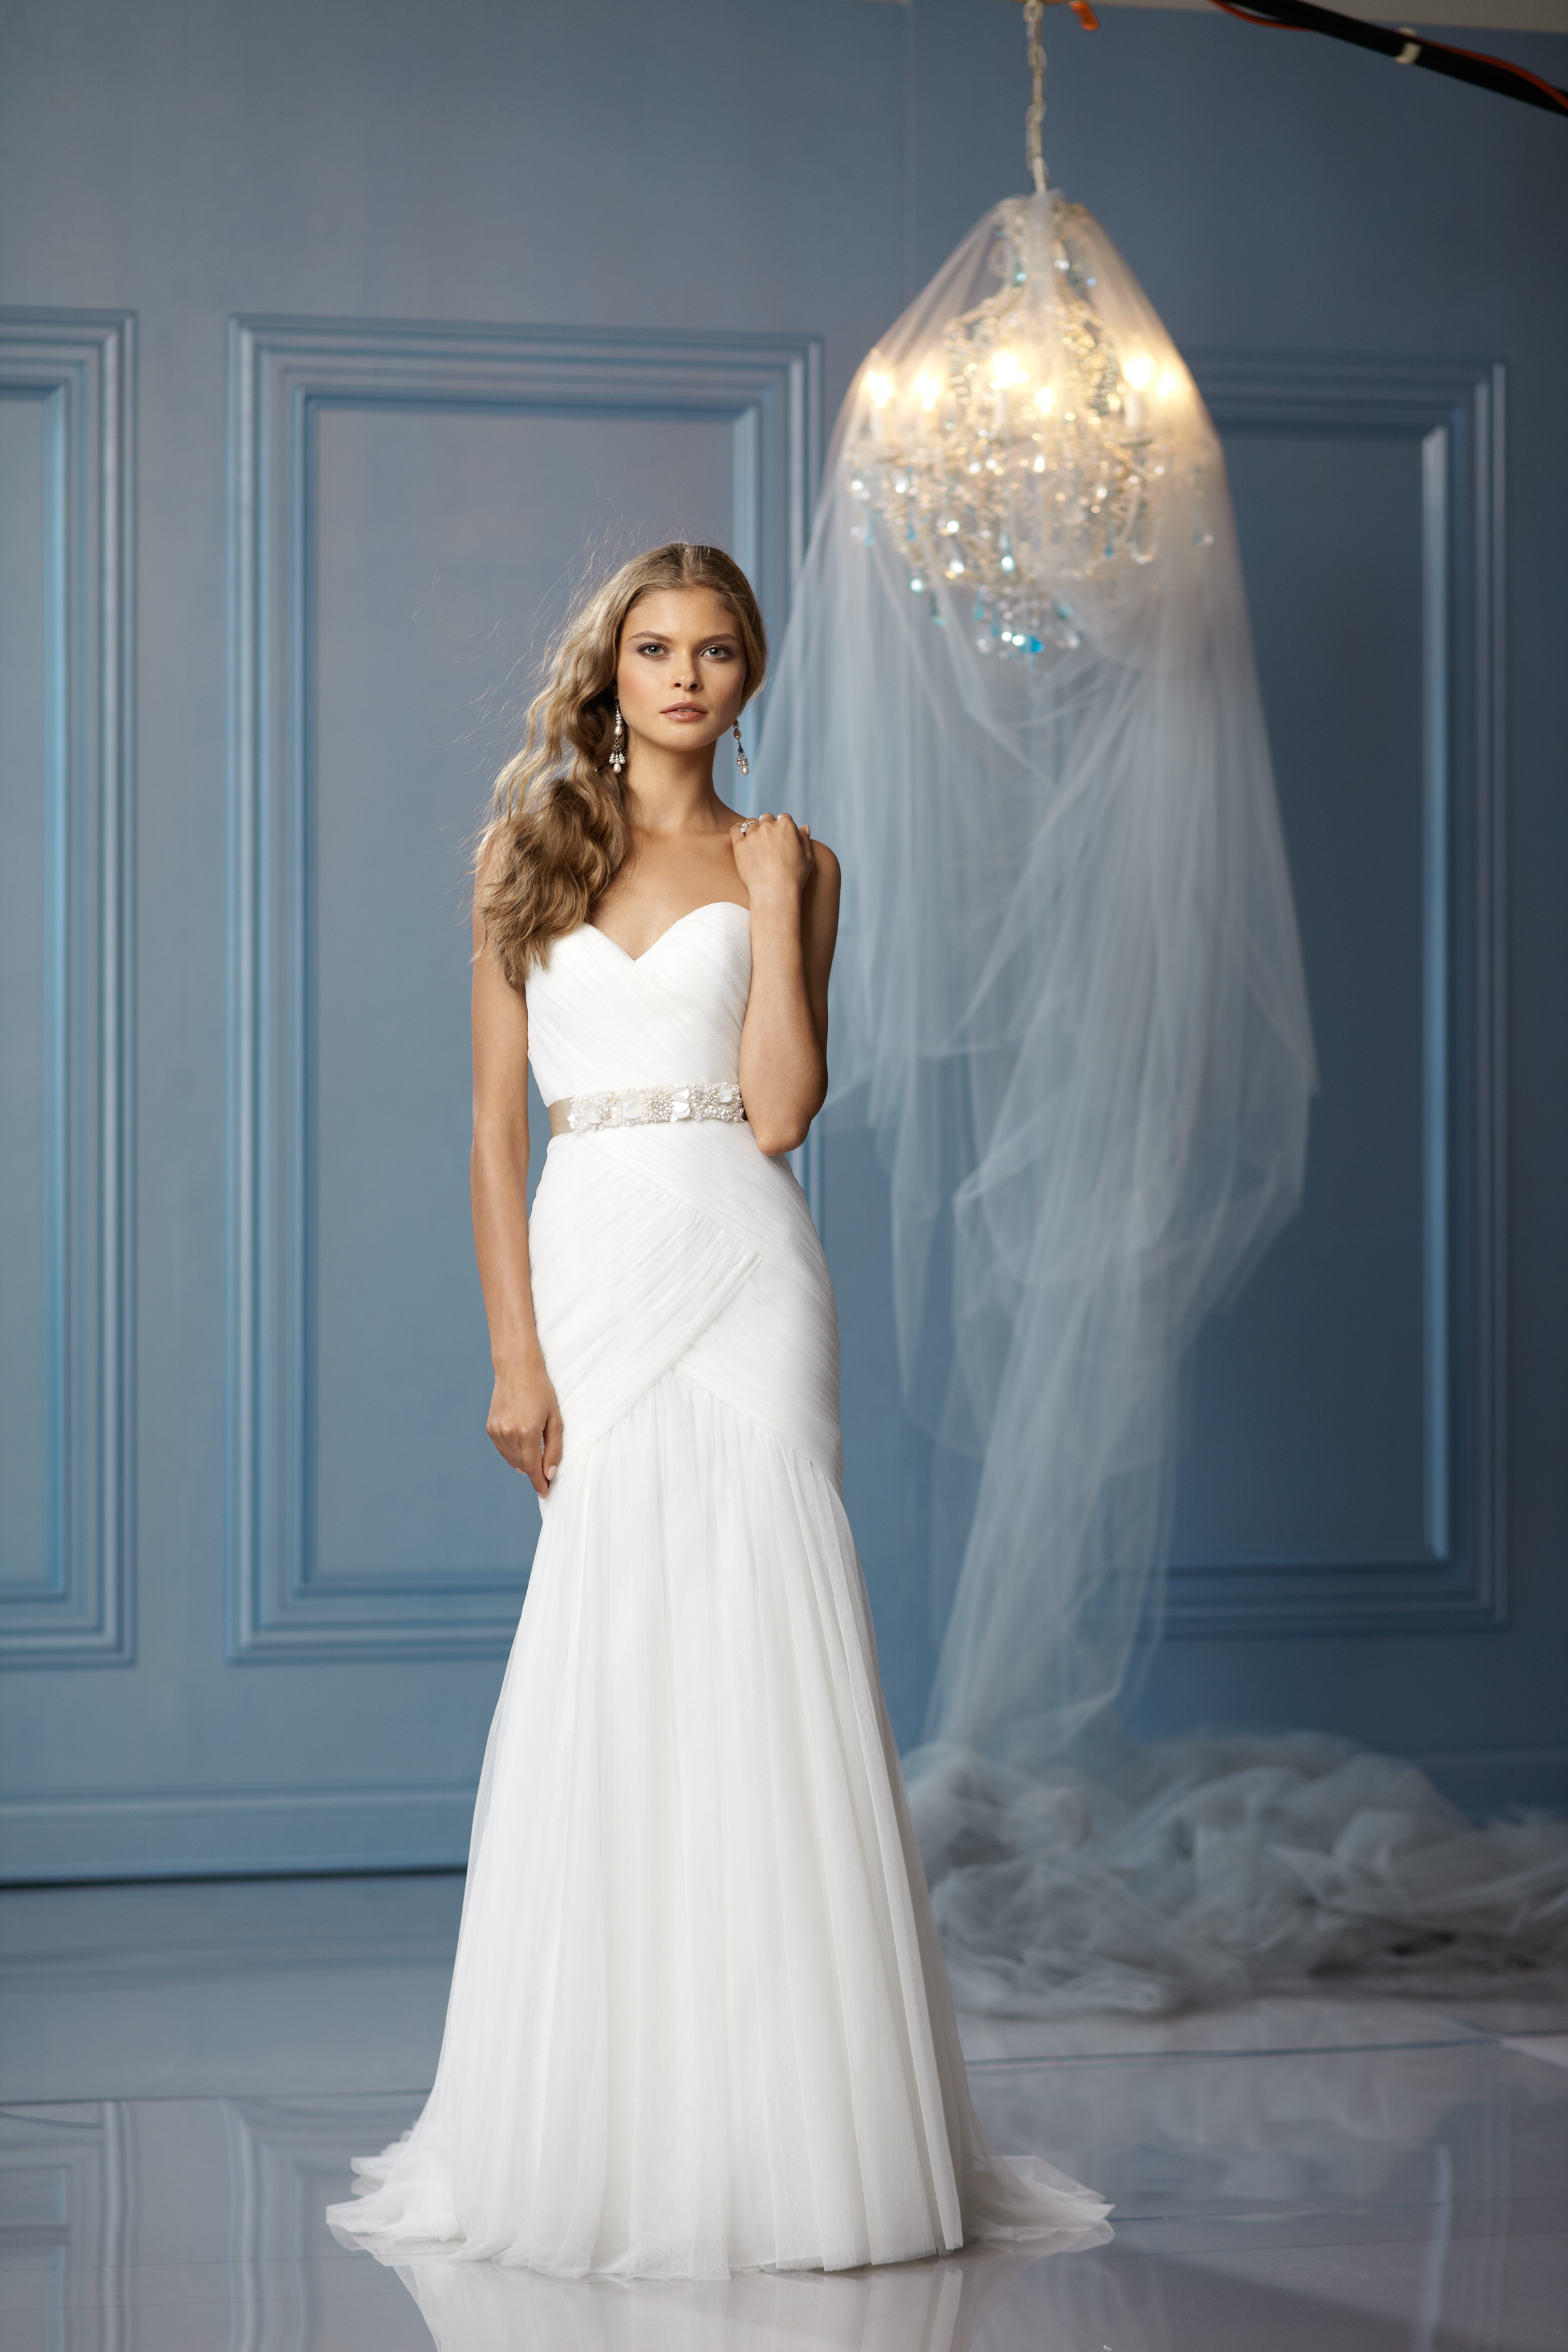 Sweetheart Wedding Dresses, Mermaid Wedding Dresses, Romantic Wedding Dresses, Fashion, white, ivory, Spring, Summer, Boho Chic, Romantic, Sweetheart, Strapless, Strapless Wedding Dresses, Tulle, Floor, Wedding dress, Silk, Dropped, Sleeveless, Ruching, Mermaid/Trumpet, Sash/Belt, Fit-n-Flare, trumpet wedding dresses, Boho Chic Wedding Dresses, Spring Wedding Dresses, tulle wedding dresses, Wtoo Brides, Silk Wedding Dresses, Summer Wedding Dresses, Floor Wedding Dresses, Sash Wedding Dresses, Belt Wedding Dresses